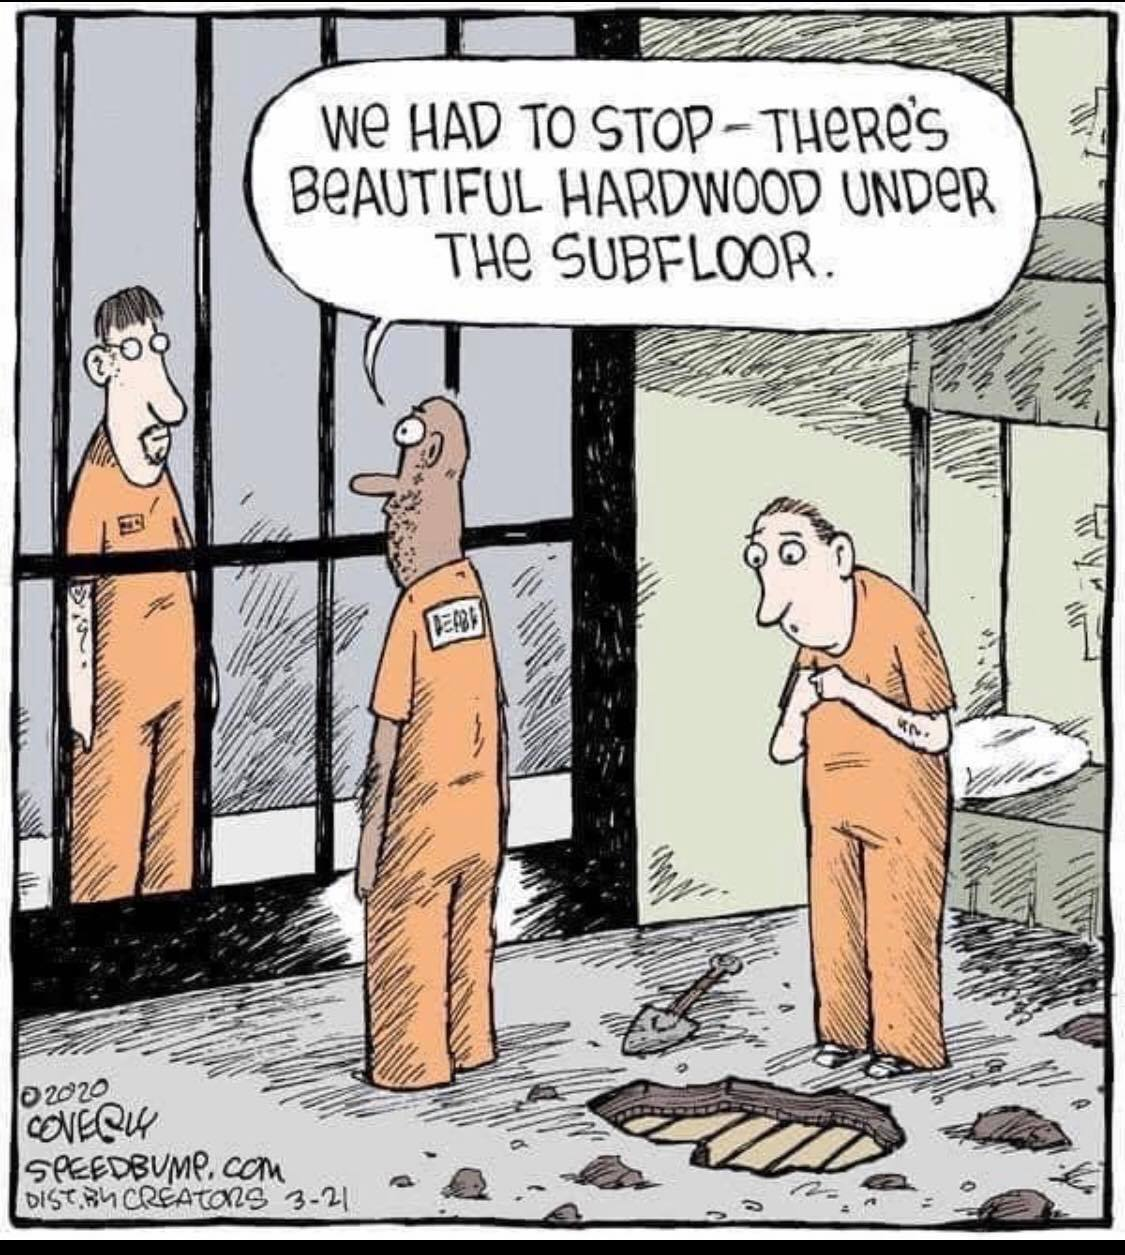 Bob Moore shared this hilarious cartoon with us. Thanks Bob. Very apropos!